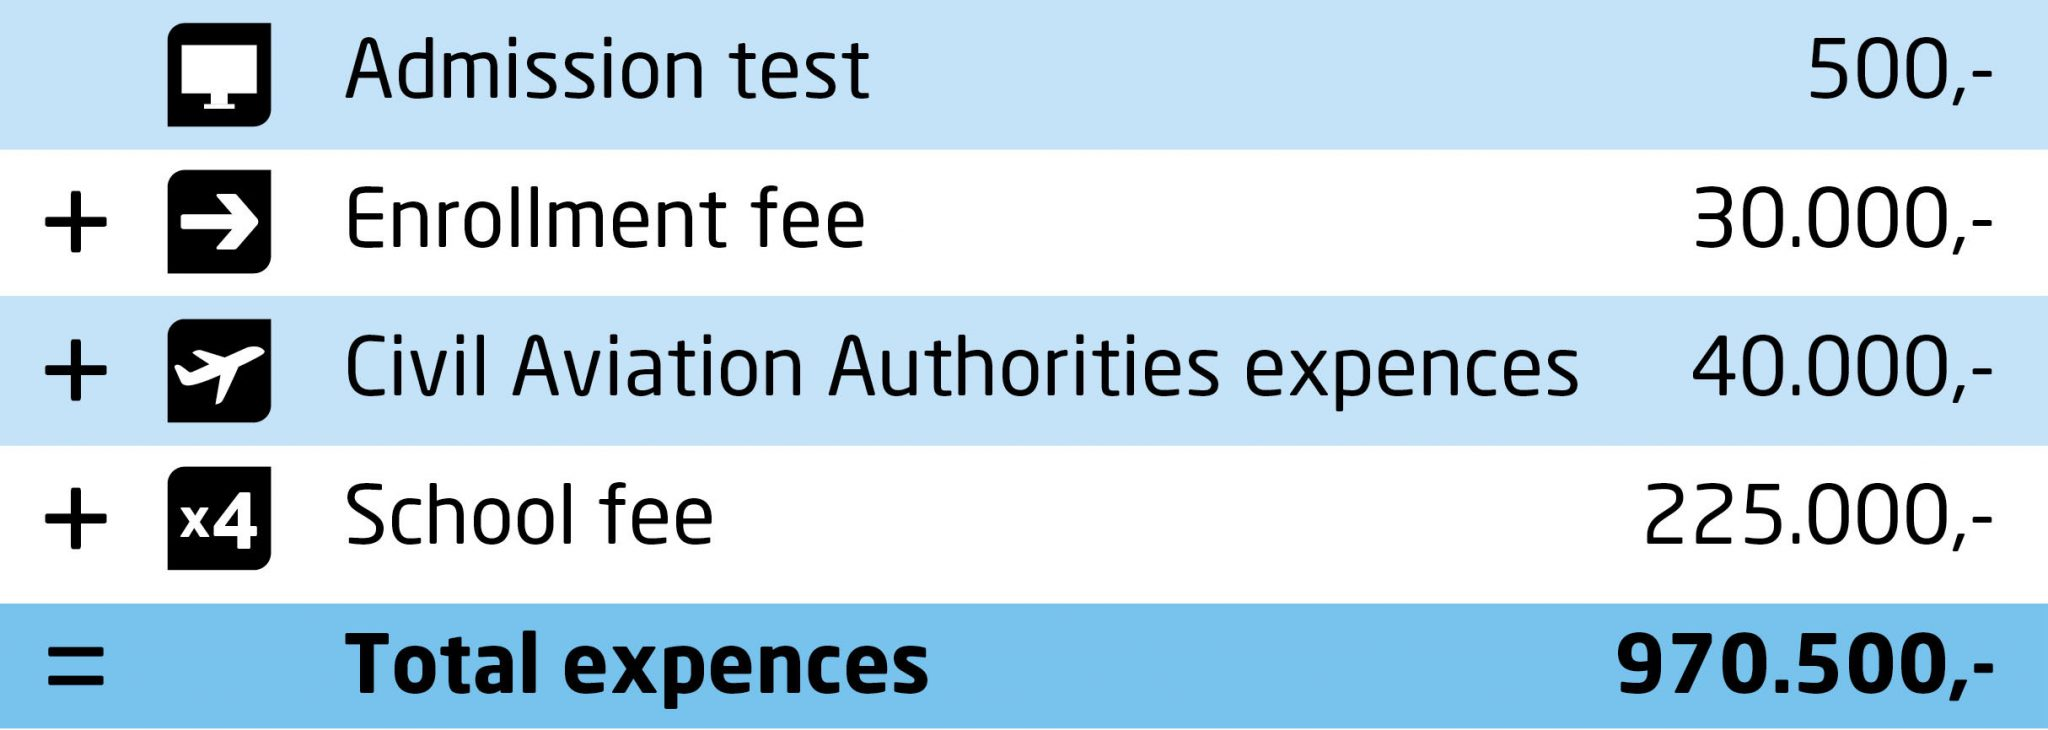 Budget with total fees for pilot education